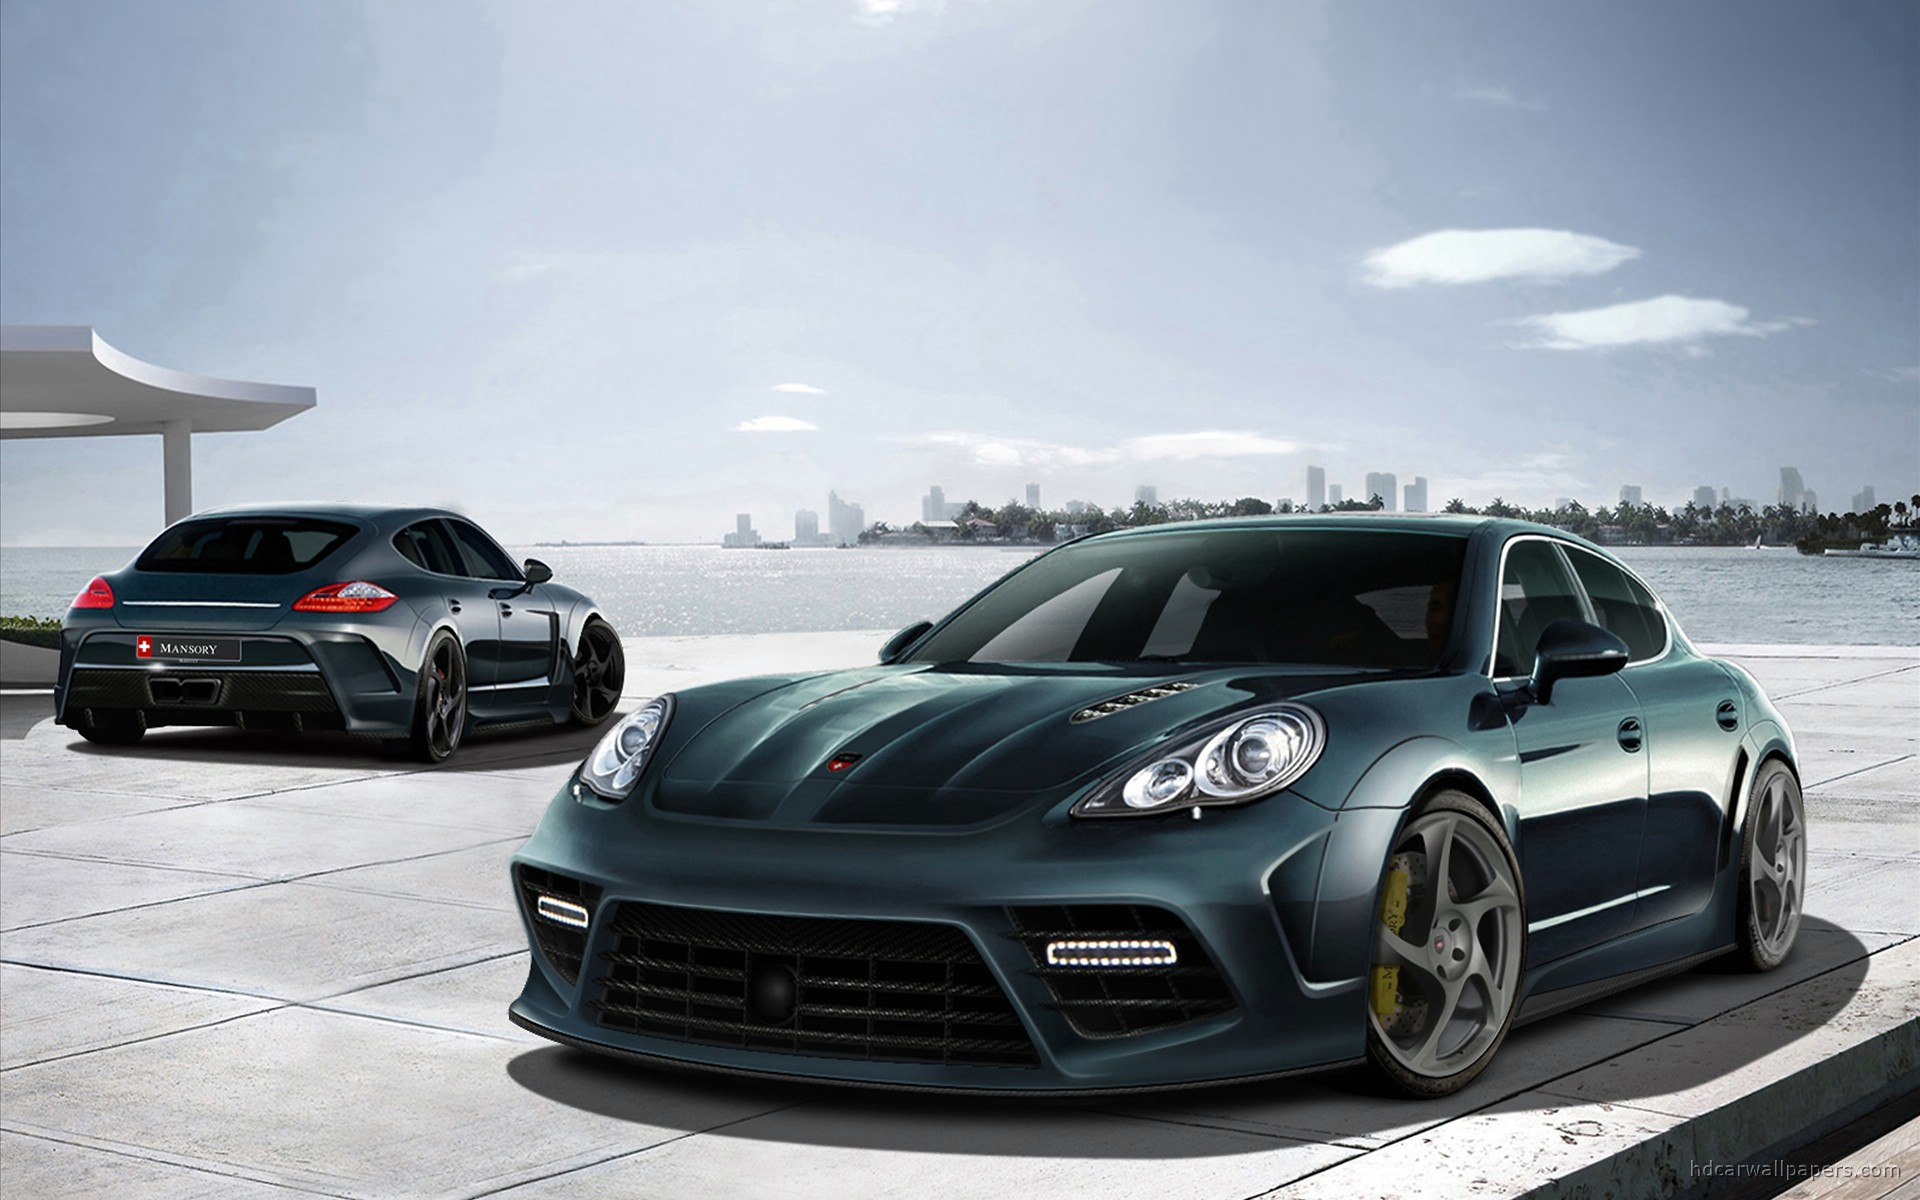 Porsche Panamera Background